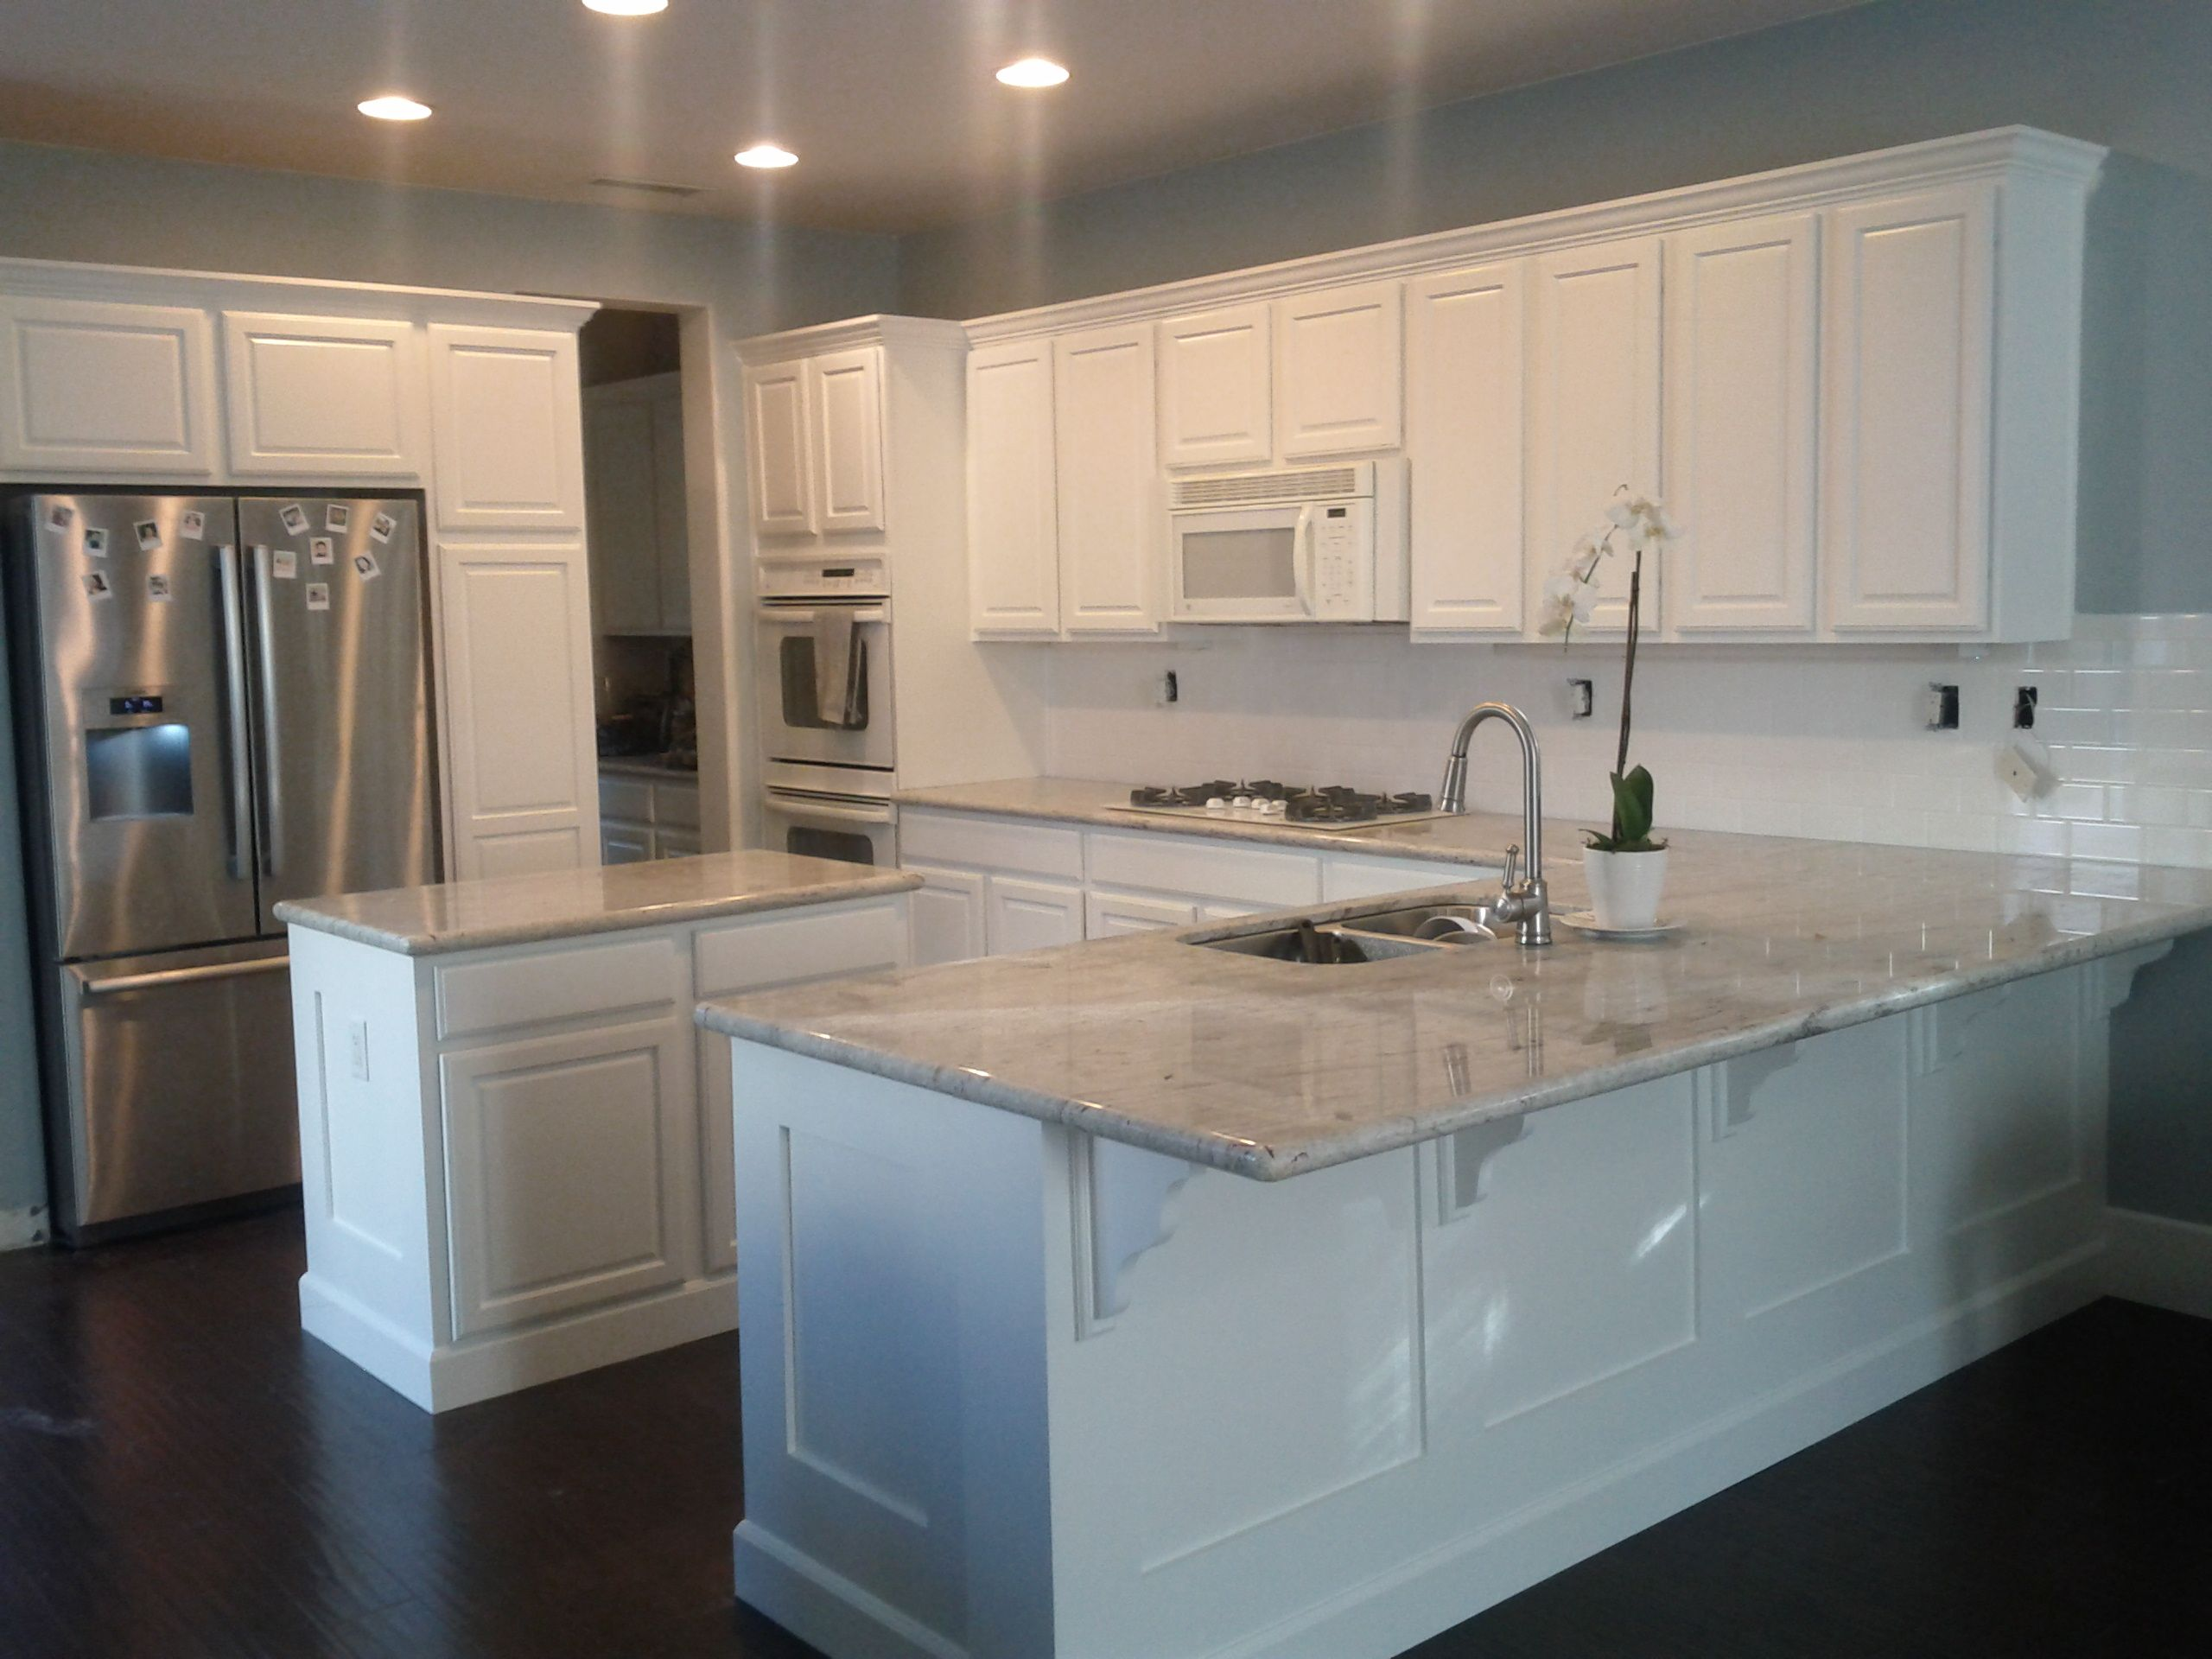 My New Kitchen River White Granite Benjamin Moore White Dove Paint Subway Tile Back Splash